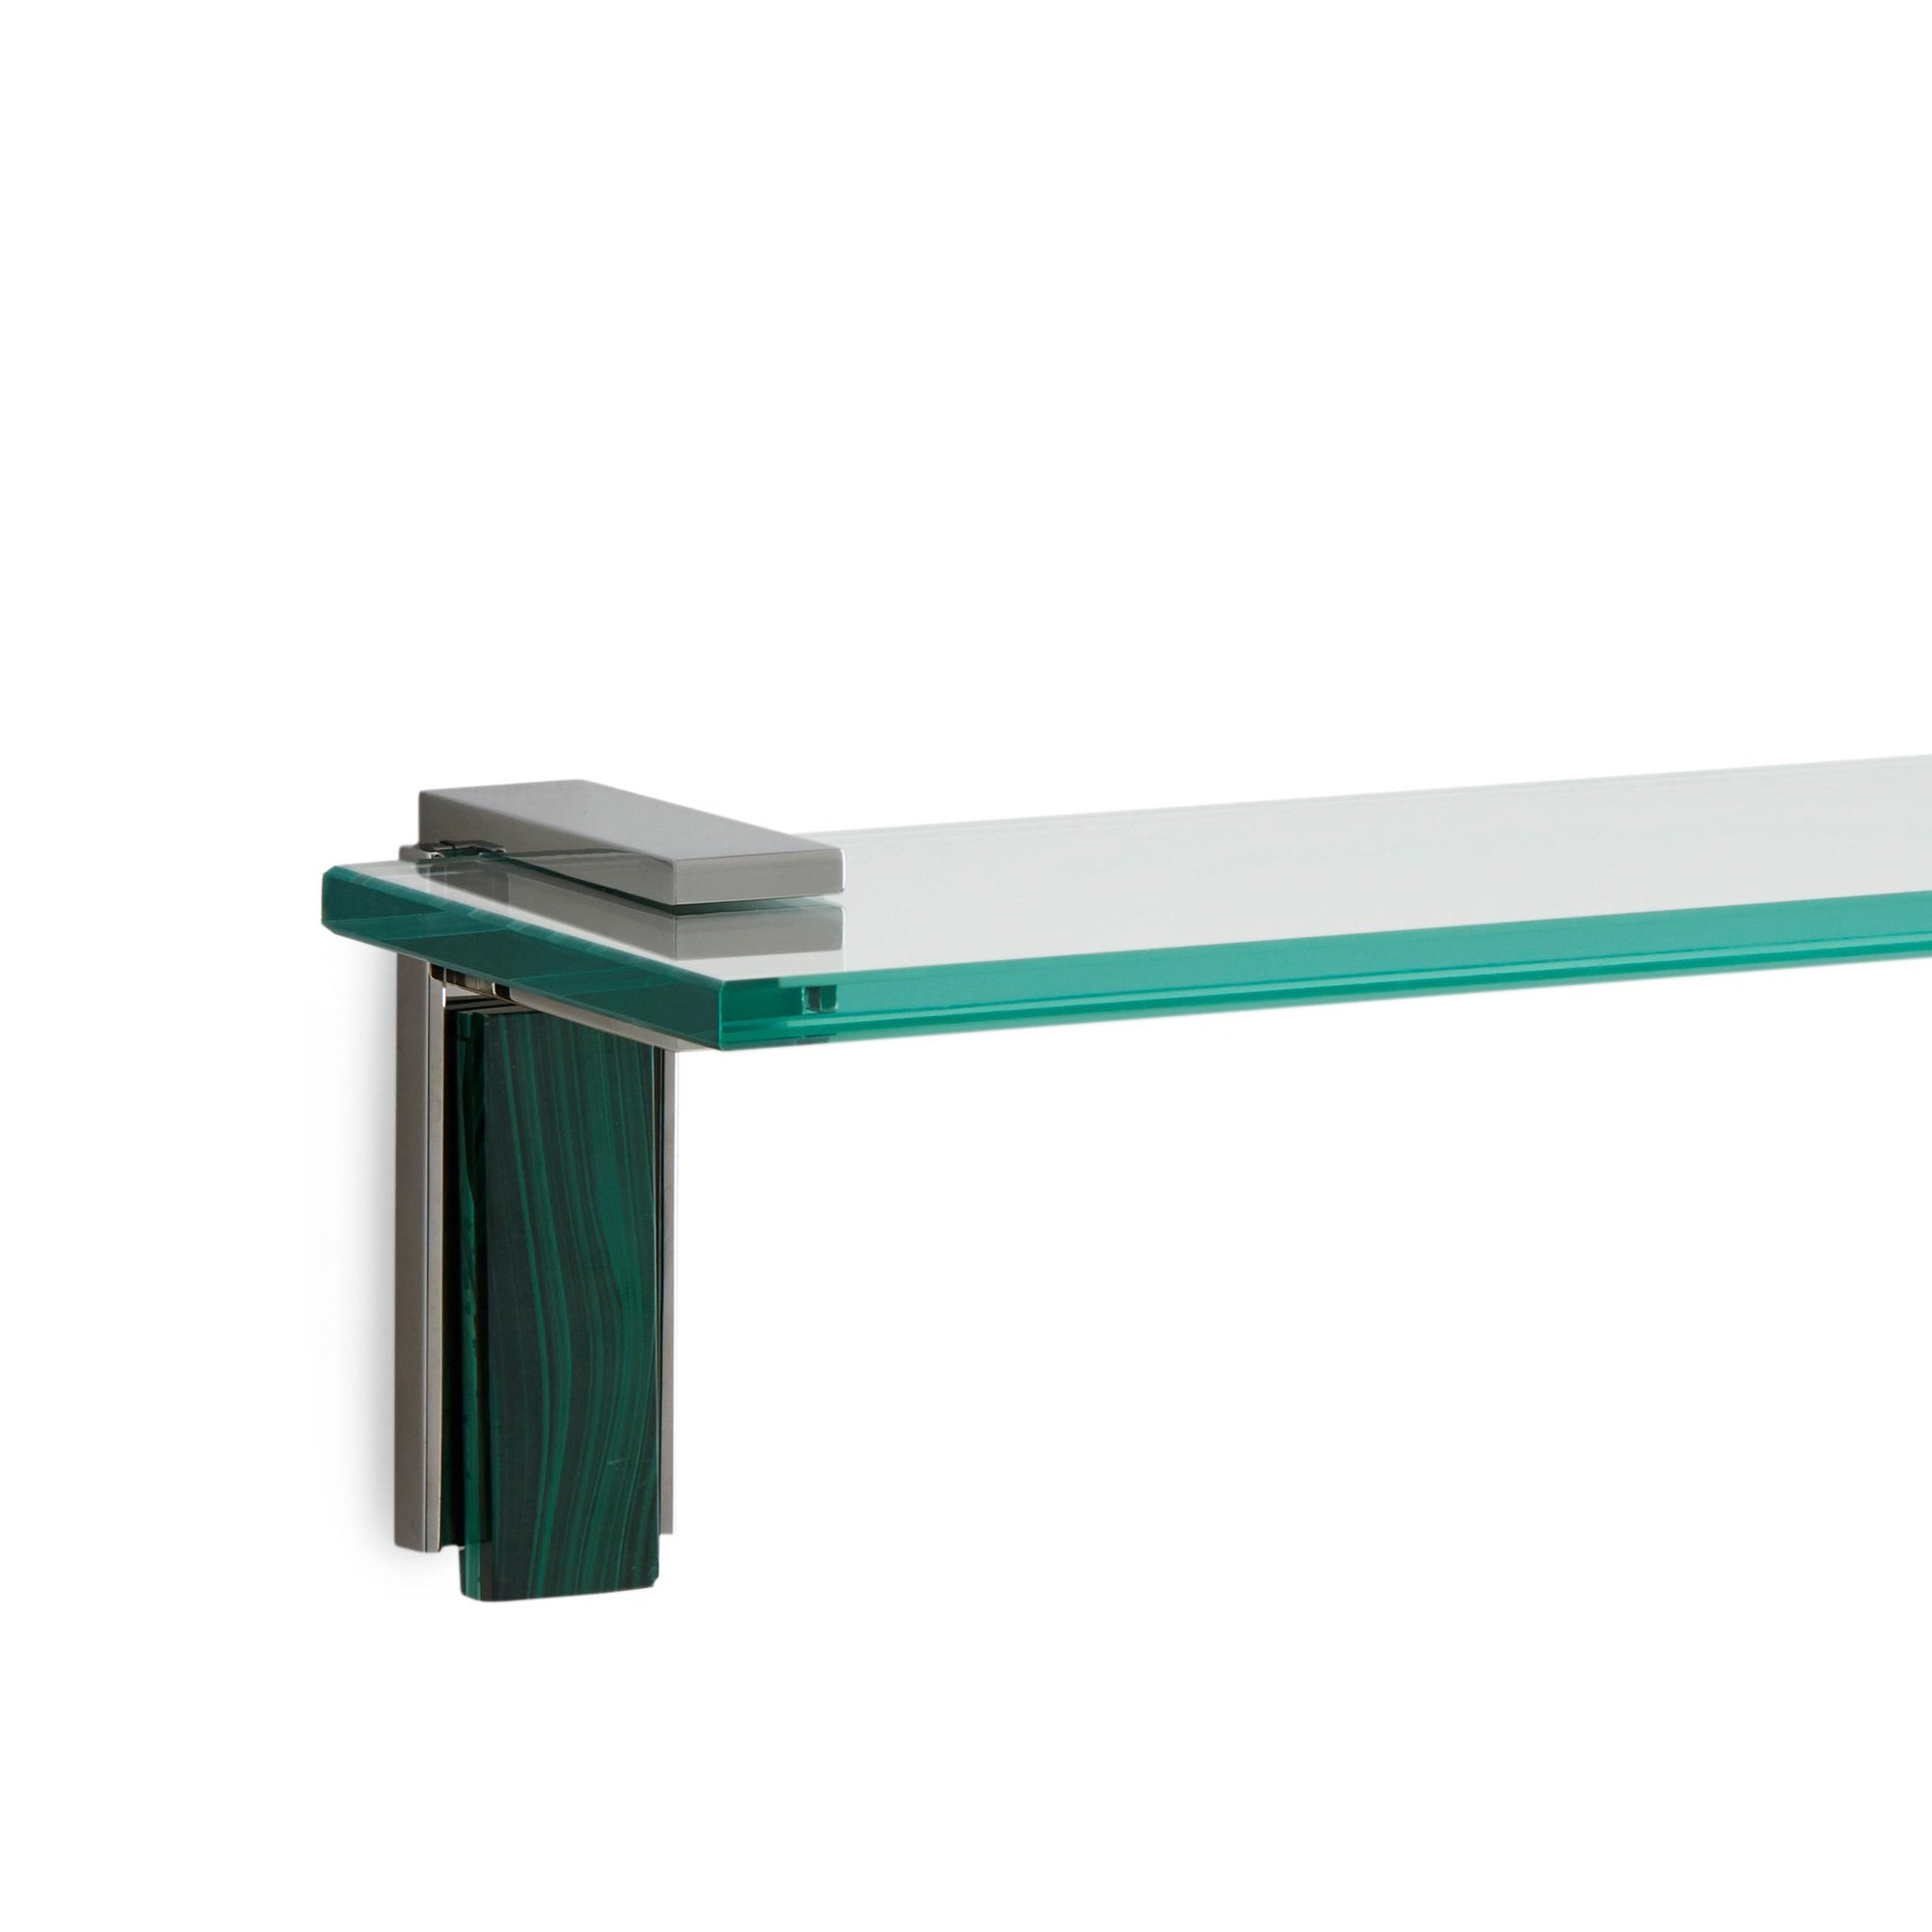 3678S-MALA-30-CP Sherle Wagner International Apollo Shelf with Malachite insert in Polished Chrome metal finish